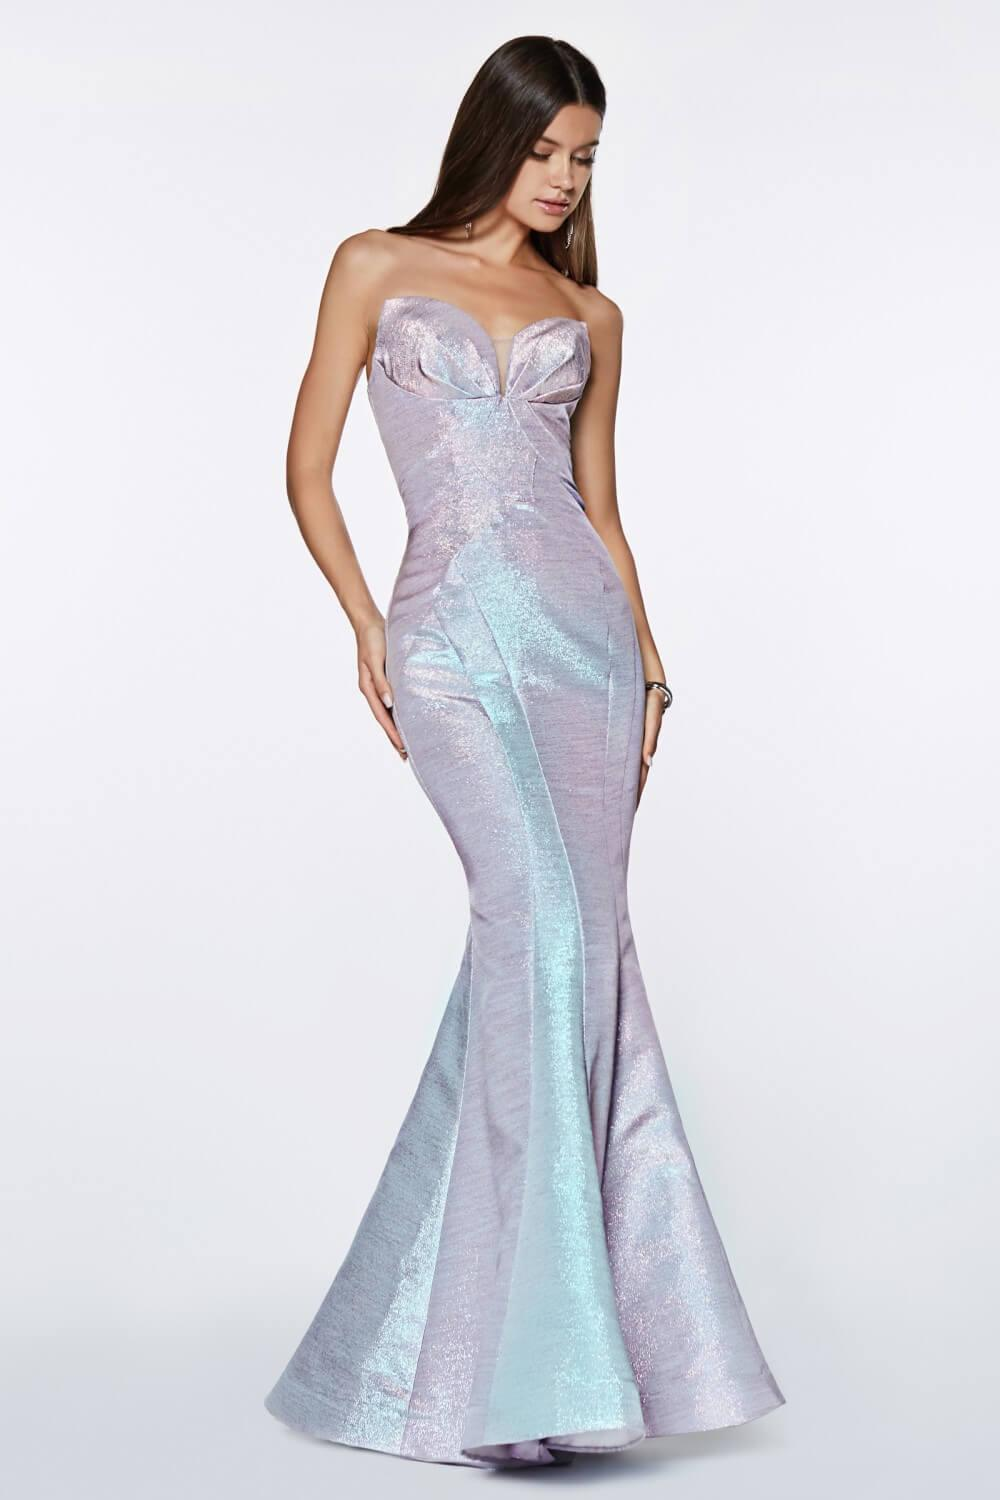 Strapless Long Metallic Mermaid Gown Prom Dress - The Dress Outlet Blue Cinderella Divine